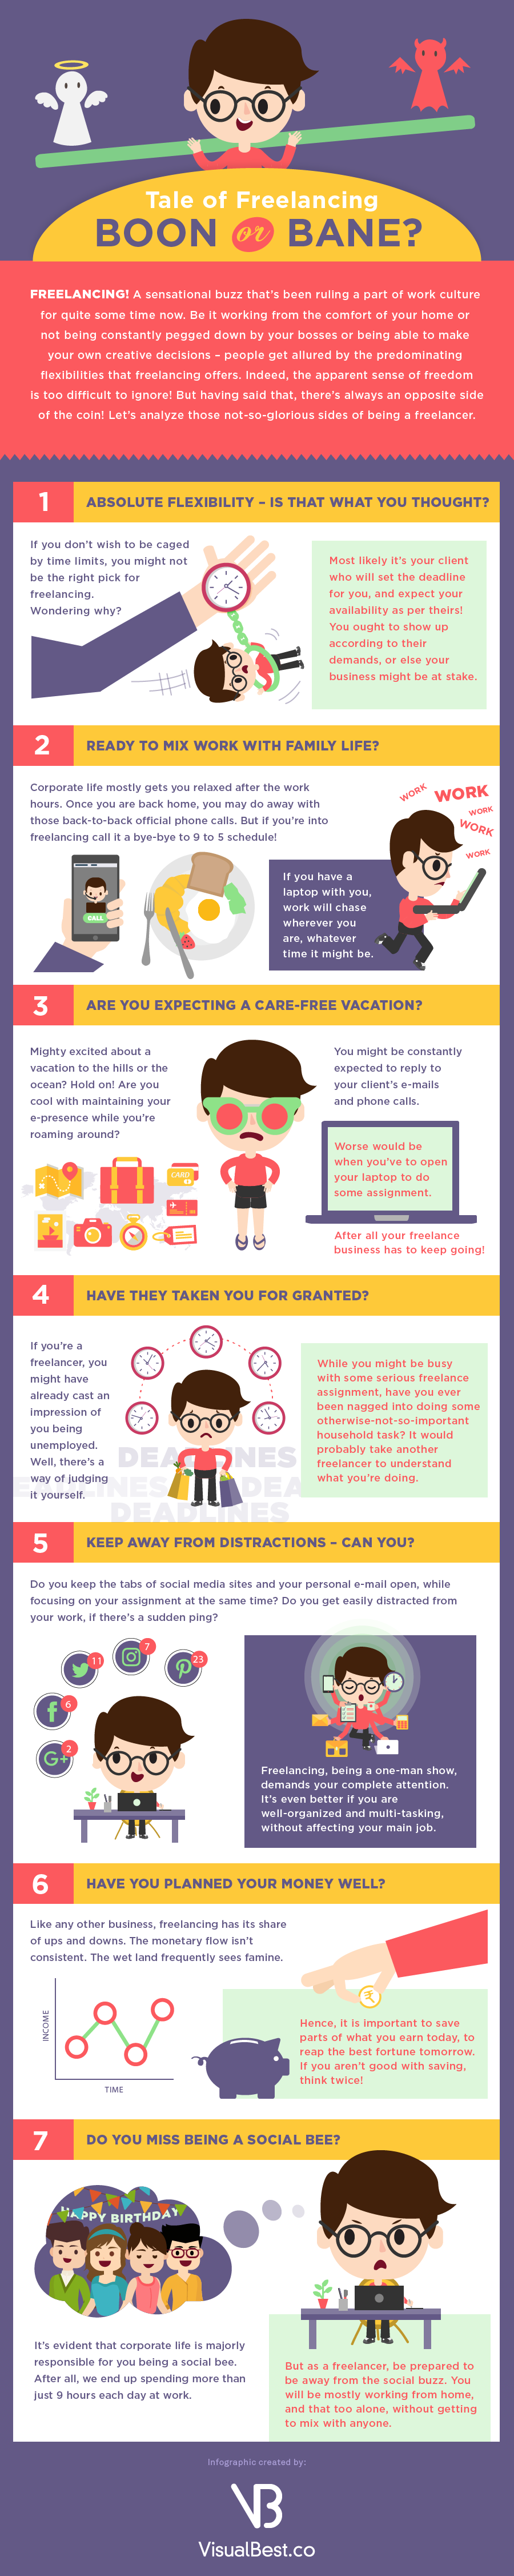 Tale of Freelancing: Boon or Bane? - #Infographic